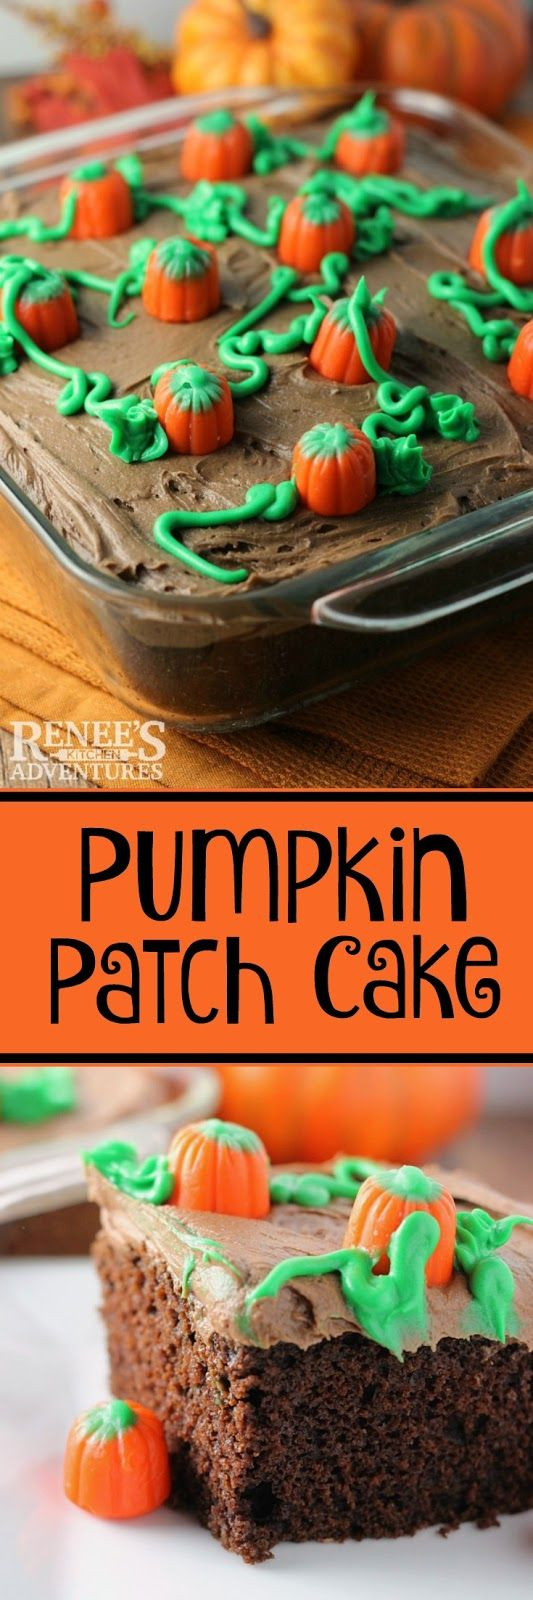 Pumpkin Patch Cake - easy recipe for homemade chocolate cake / chocolate frosting topped with a festive pumpkin patch.  Halloween and Thanksgiving.